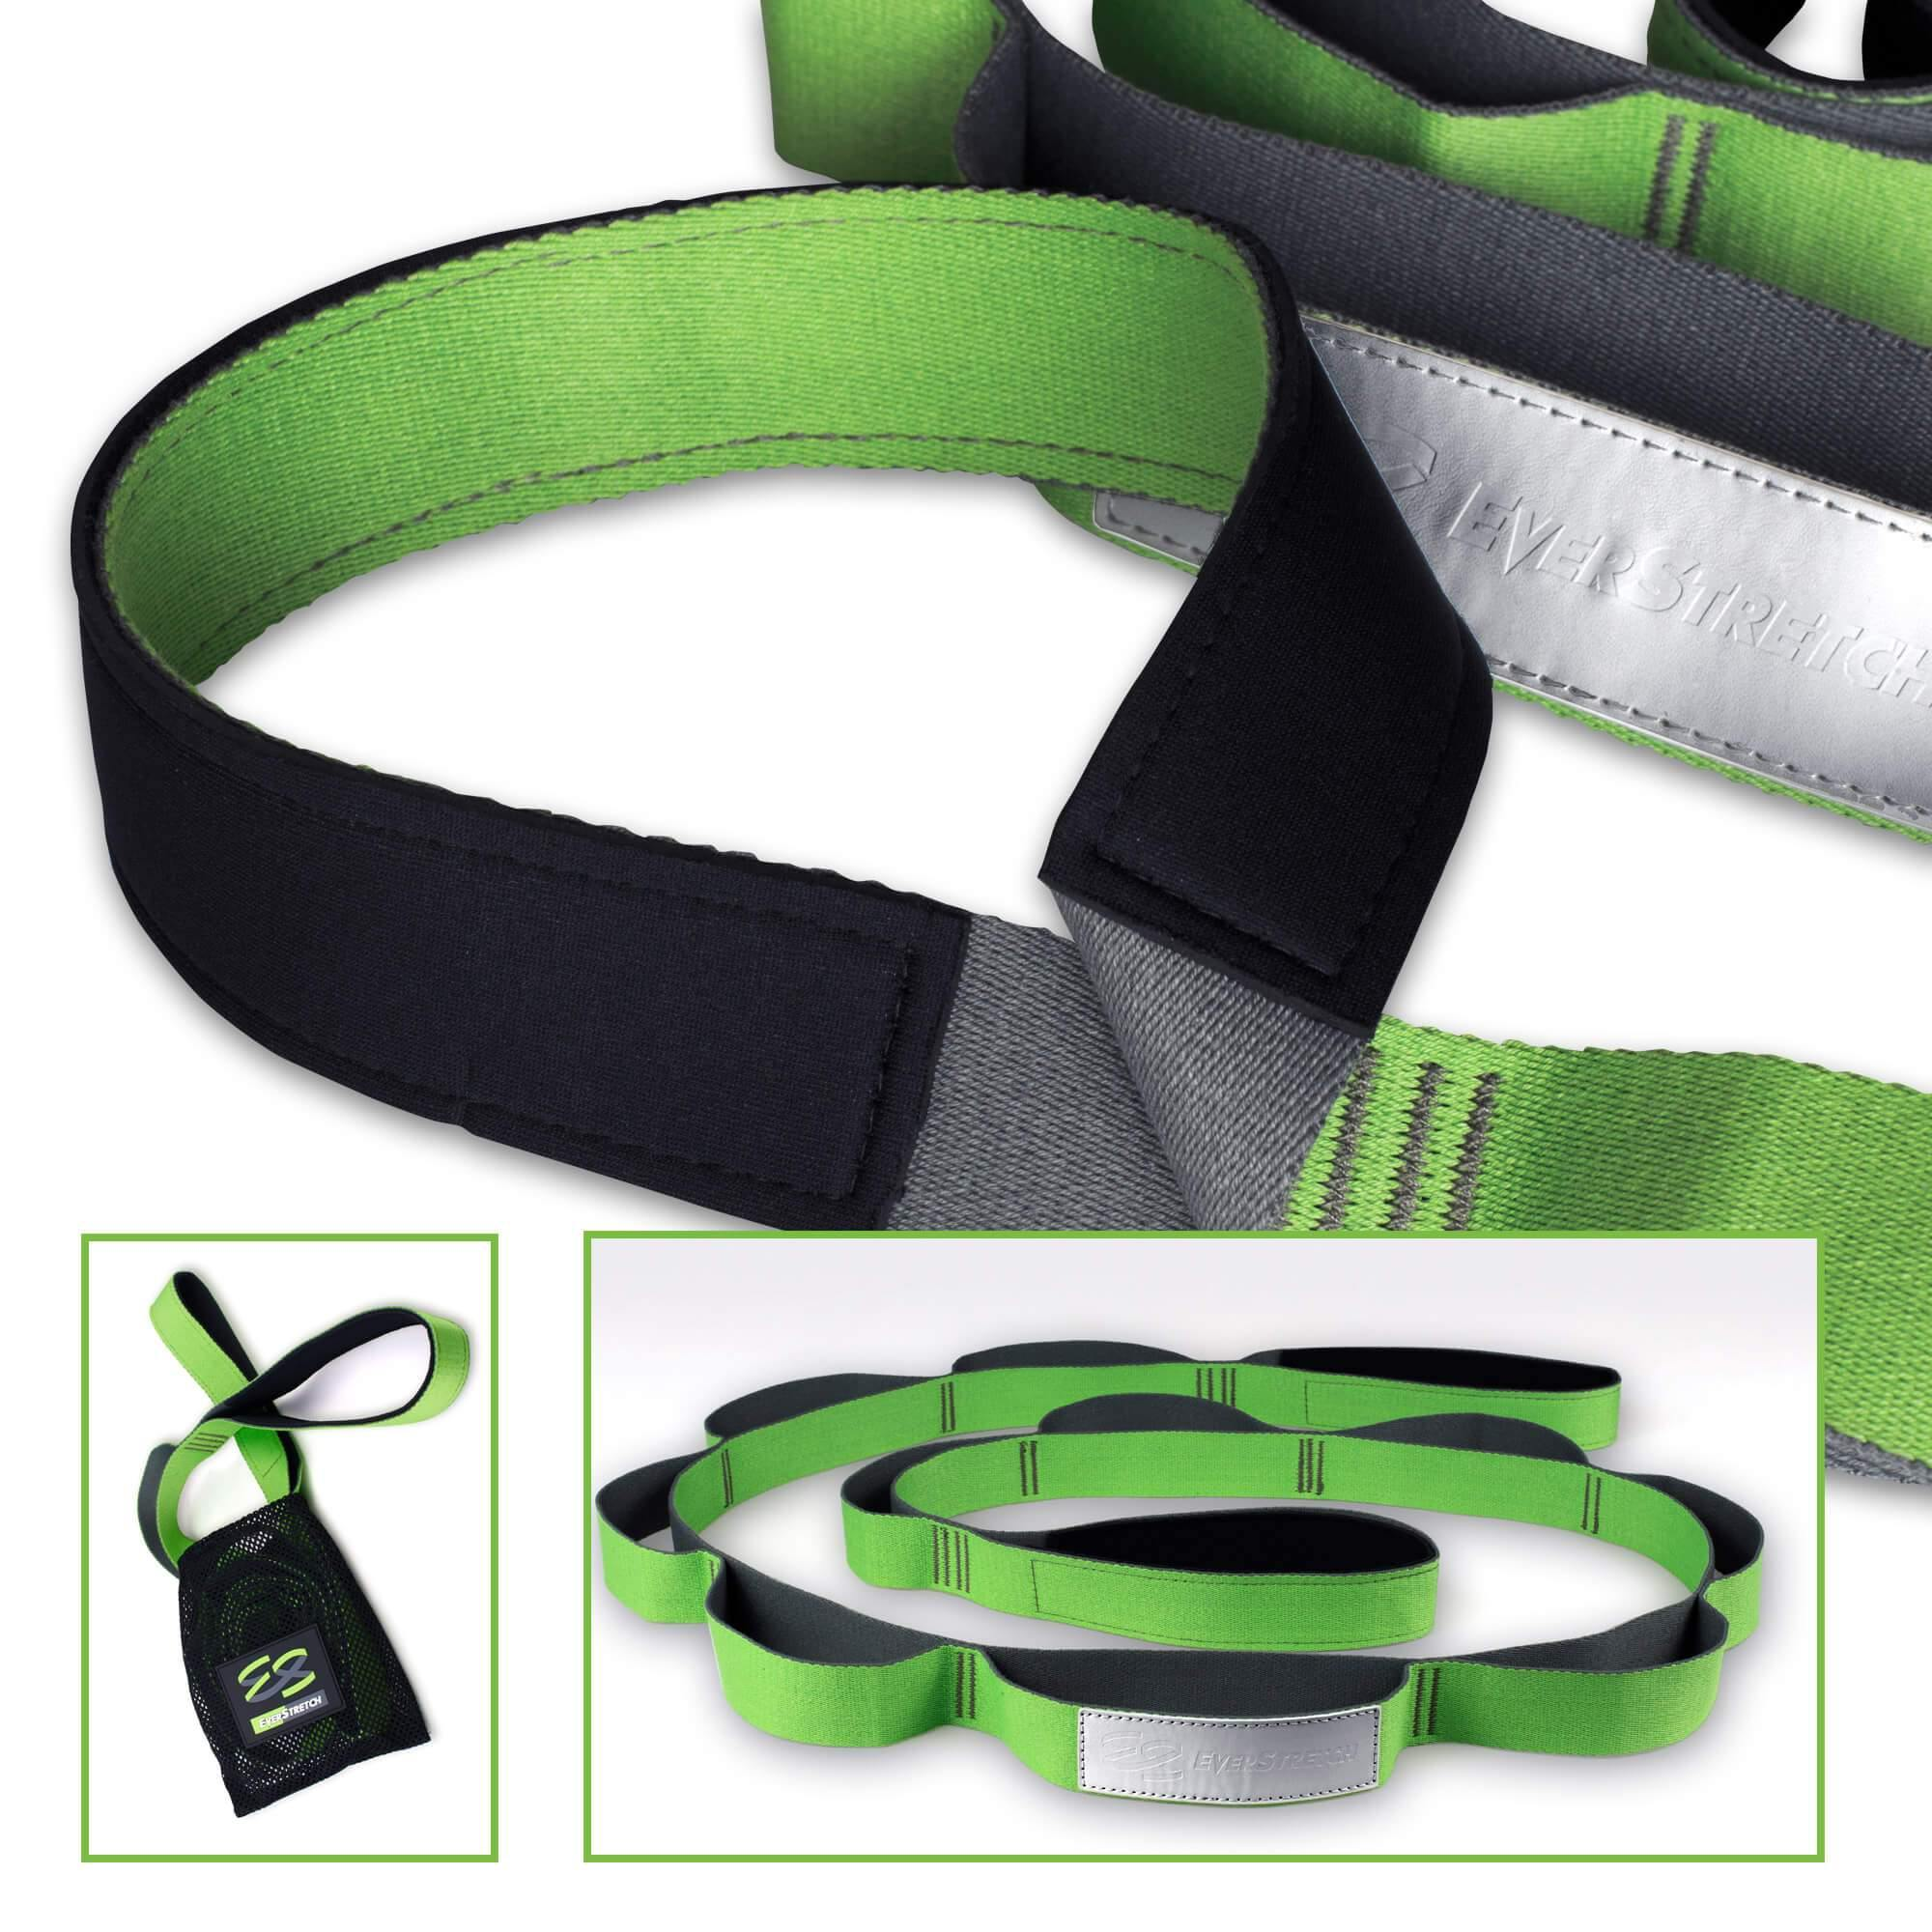 Looped Stretching Strap by EverStretch - EverStretch